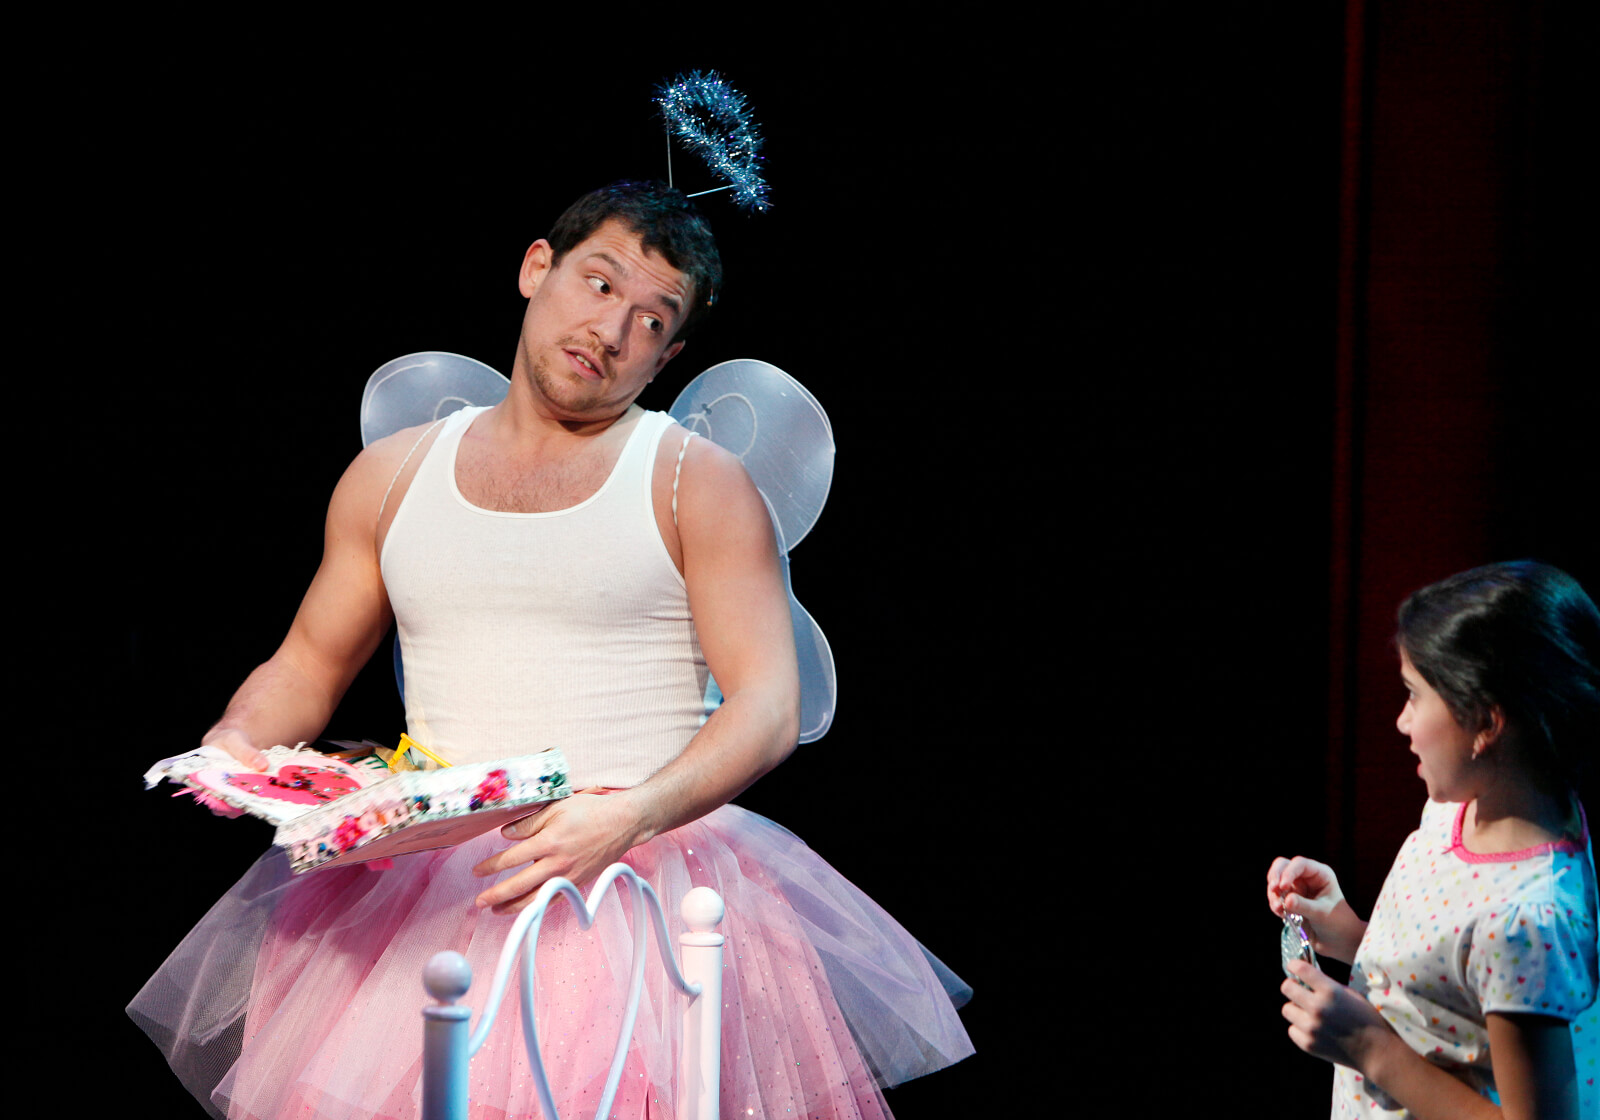 Miguel (Miguel Cervantes) in a tutu and tank top with a sparkly crown reads to a young girl, Yolanda (Lina Silver) from a colorful book.